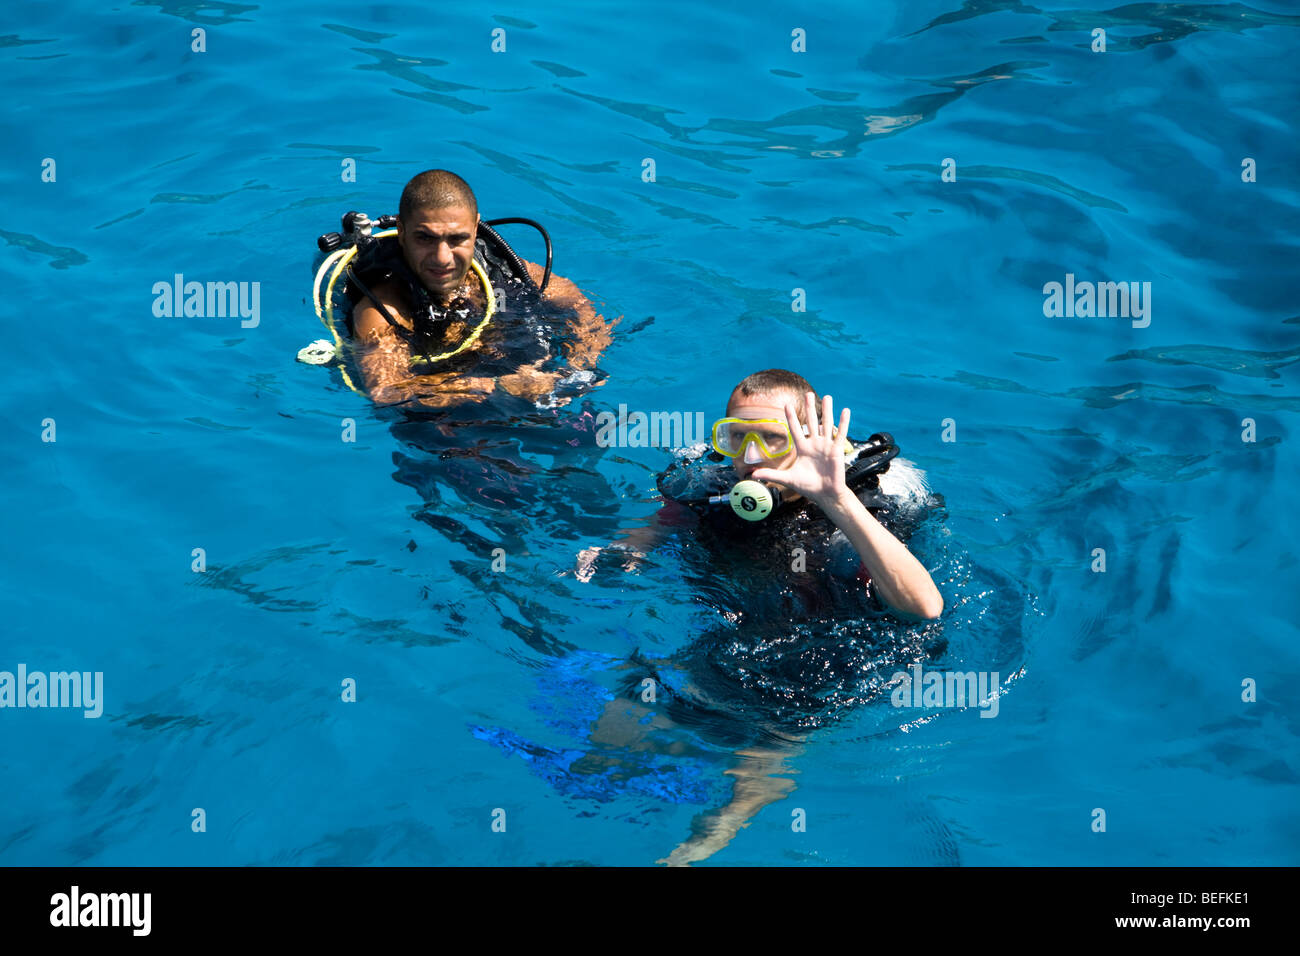 Scuba divers, Sharm el Sheikh, Red Sea, Egypt - Stock Image